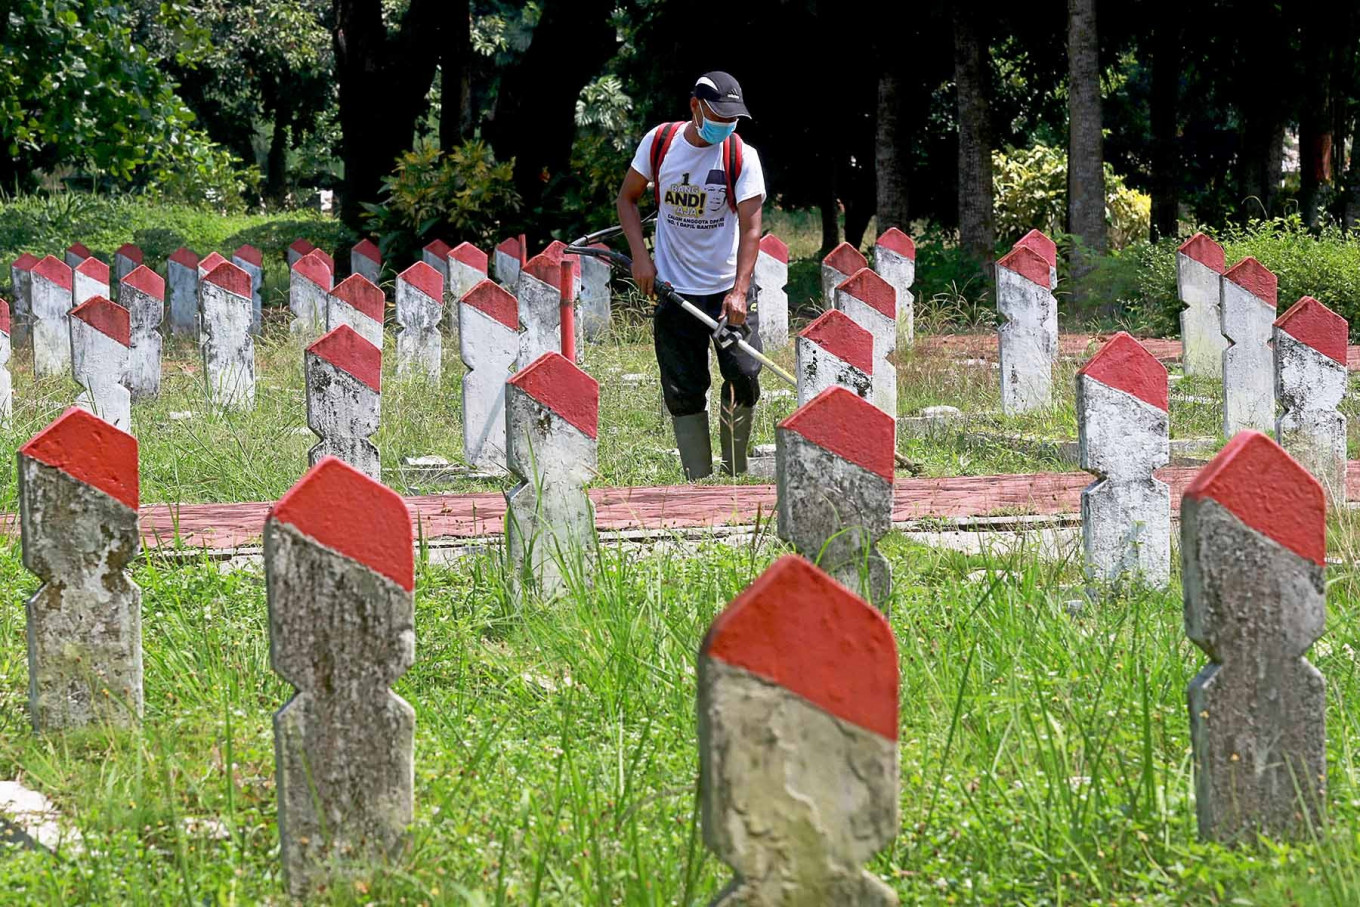 lham, 39, a caretaker at the Pahlawan Seribu Heroes Cemetery in South Tangerang, Banten, cuts weed around gravestones on Monday, Nov 9. Unlike previous years, the cemetery was closed during National Heroes Day on Nov. 10 due to the COVID-19 crisis. JP/Dhoni Setiawan.